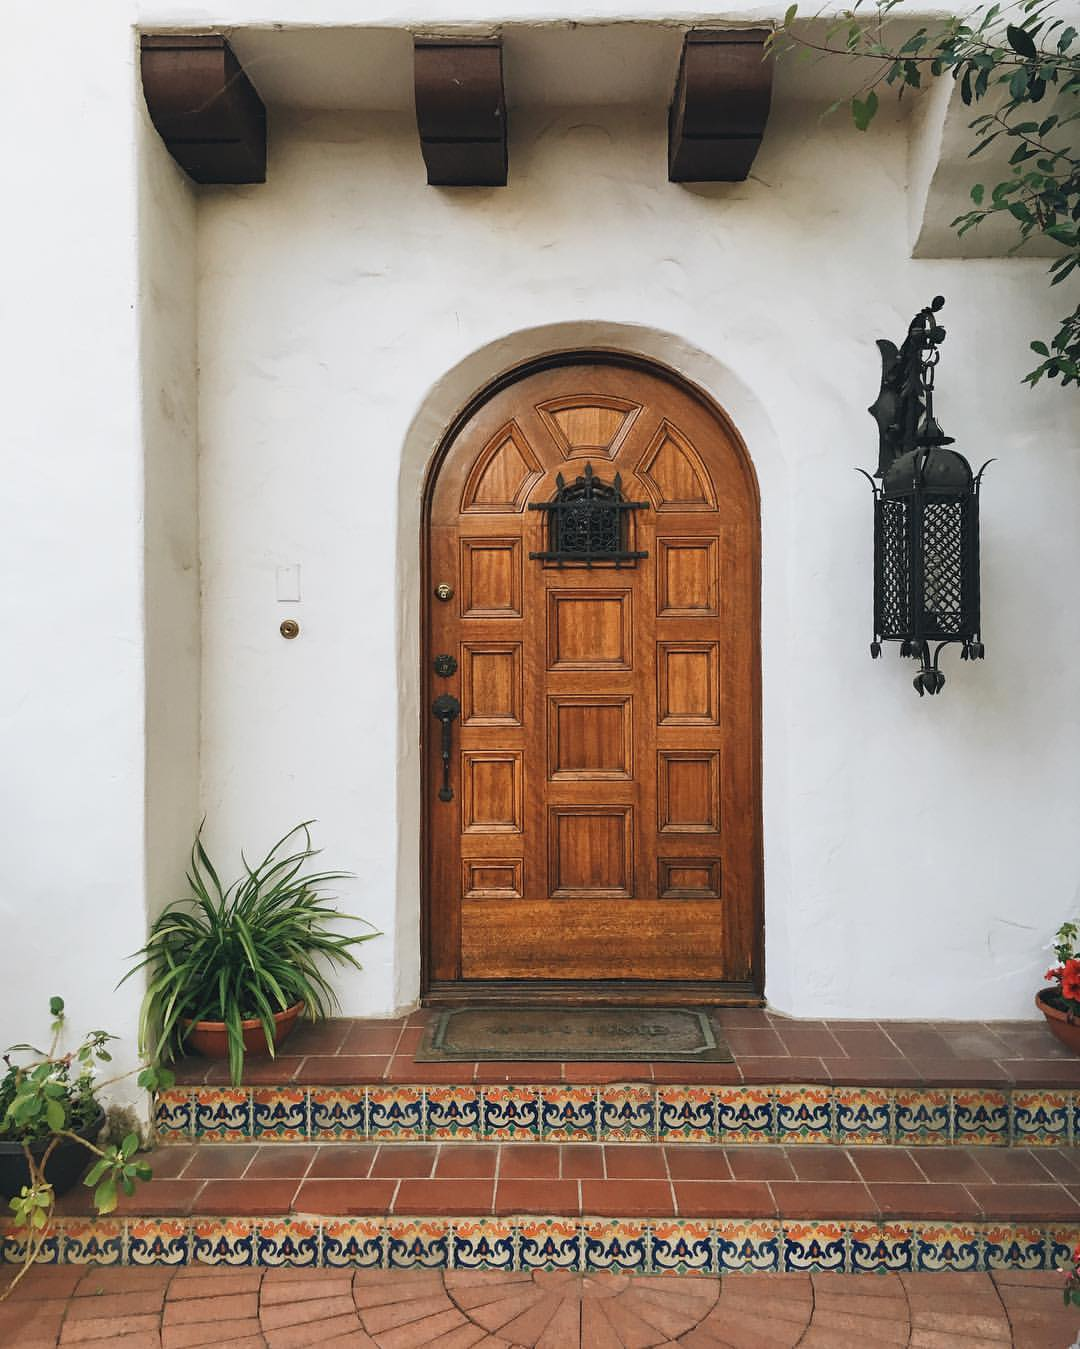 when-youre-scouting-for-a-wedding-styledshoot-and-you-want-to-take-the-door-and-tiles-and-stairs-home--123366---vsco-dreamchapel-the_dream_chapel-spanish-architecture-gorgeous-cantwaittoshootagainhere-wroughtiron-wood_27465371475_o.jpg